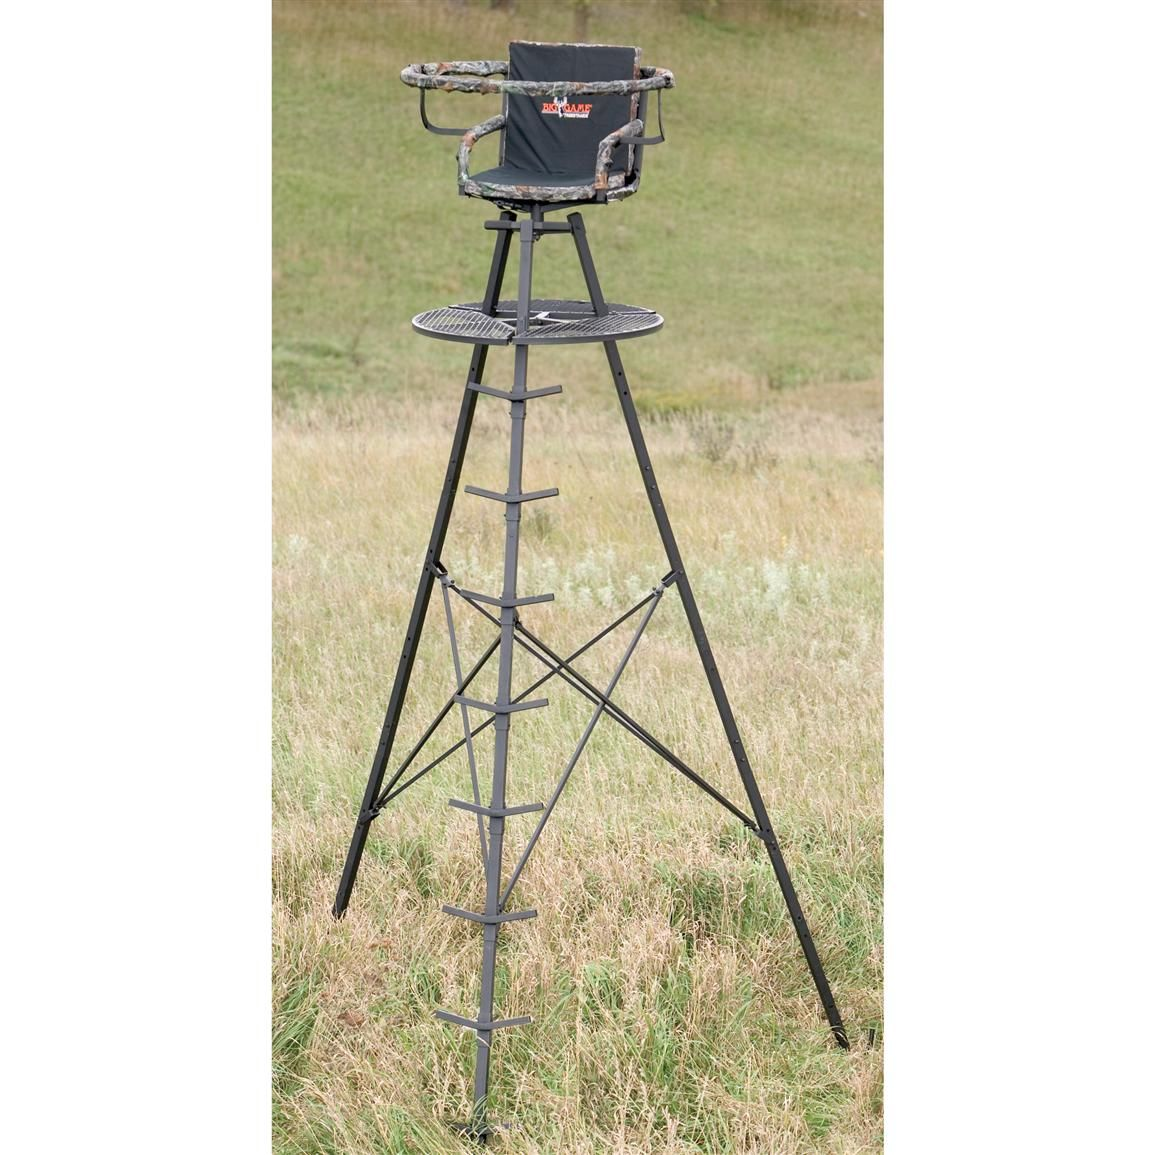 Archery Tripod Stand Tree Stand Hunting Tree Stands Hunting Deer Hunting